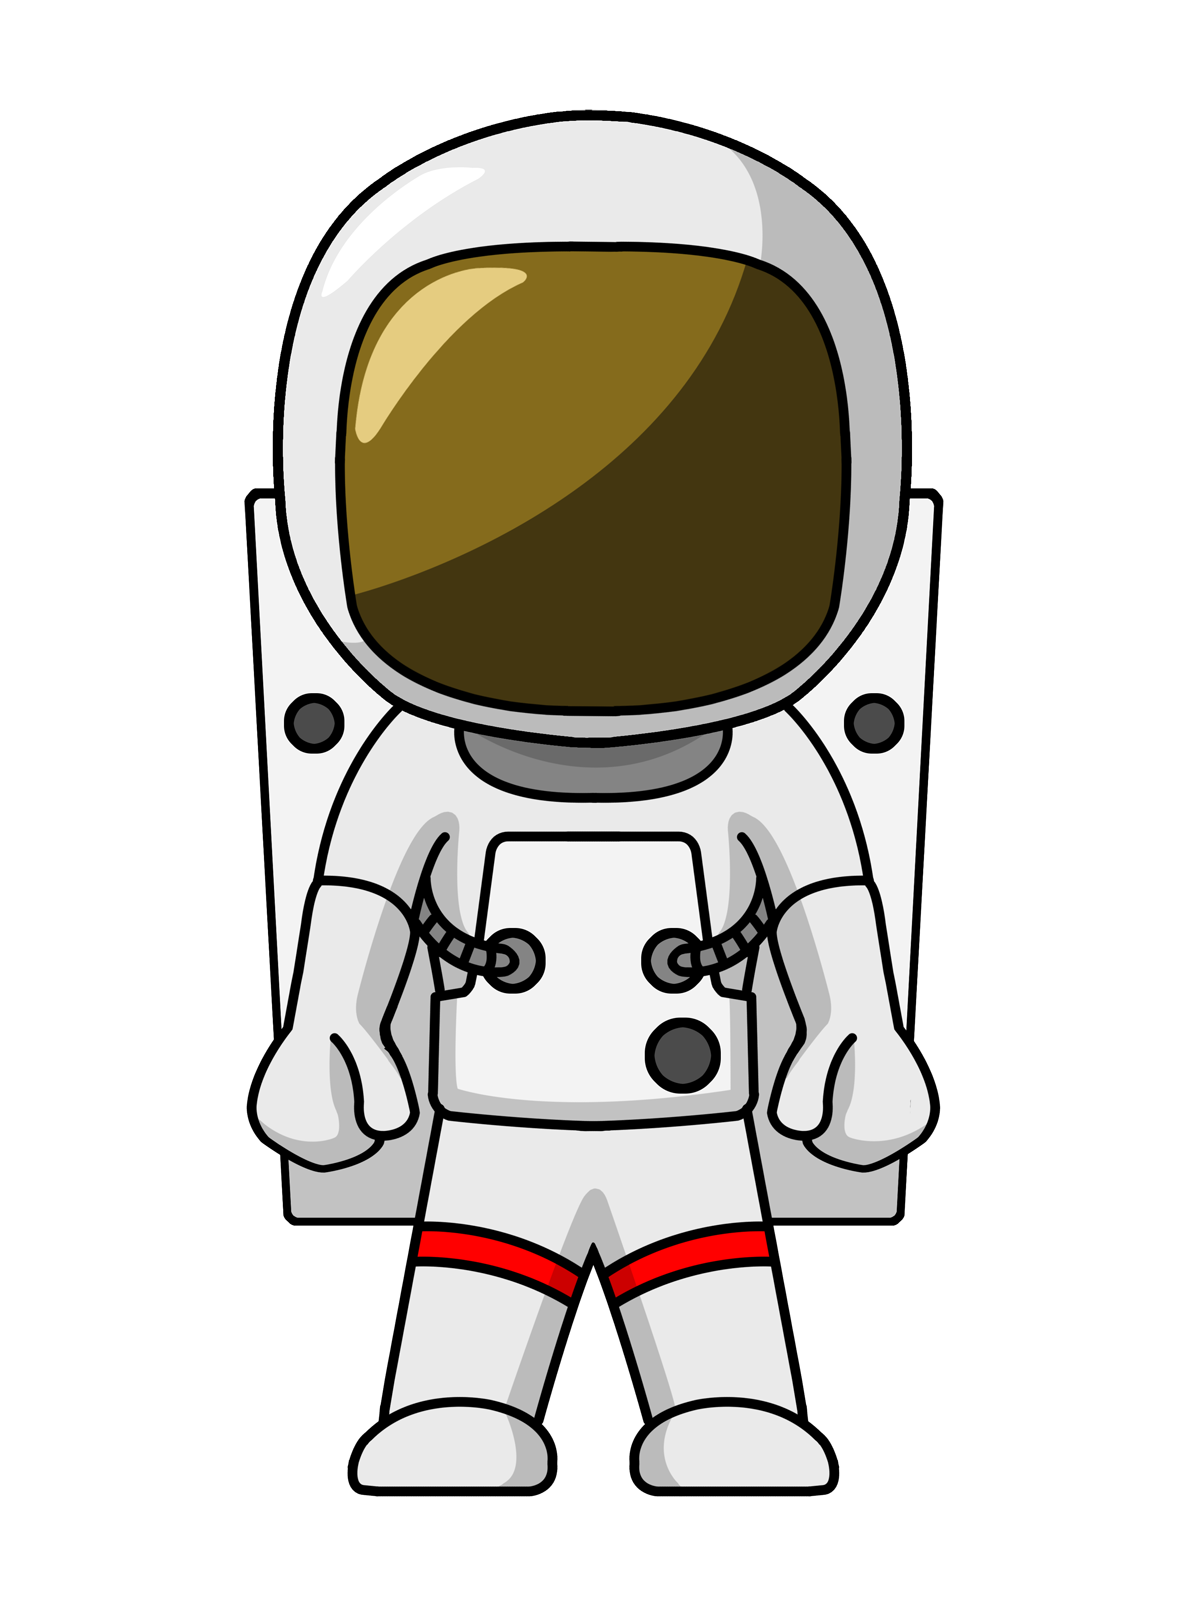 Astronaut cast free clipart clipart images gallery for free.